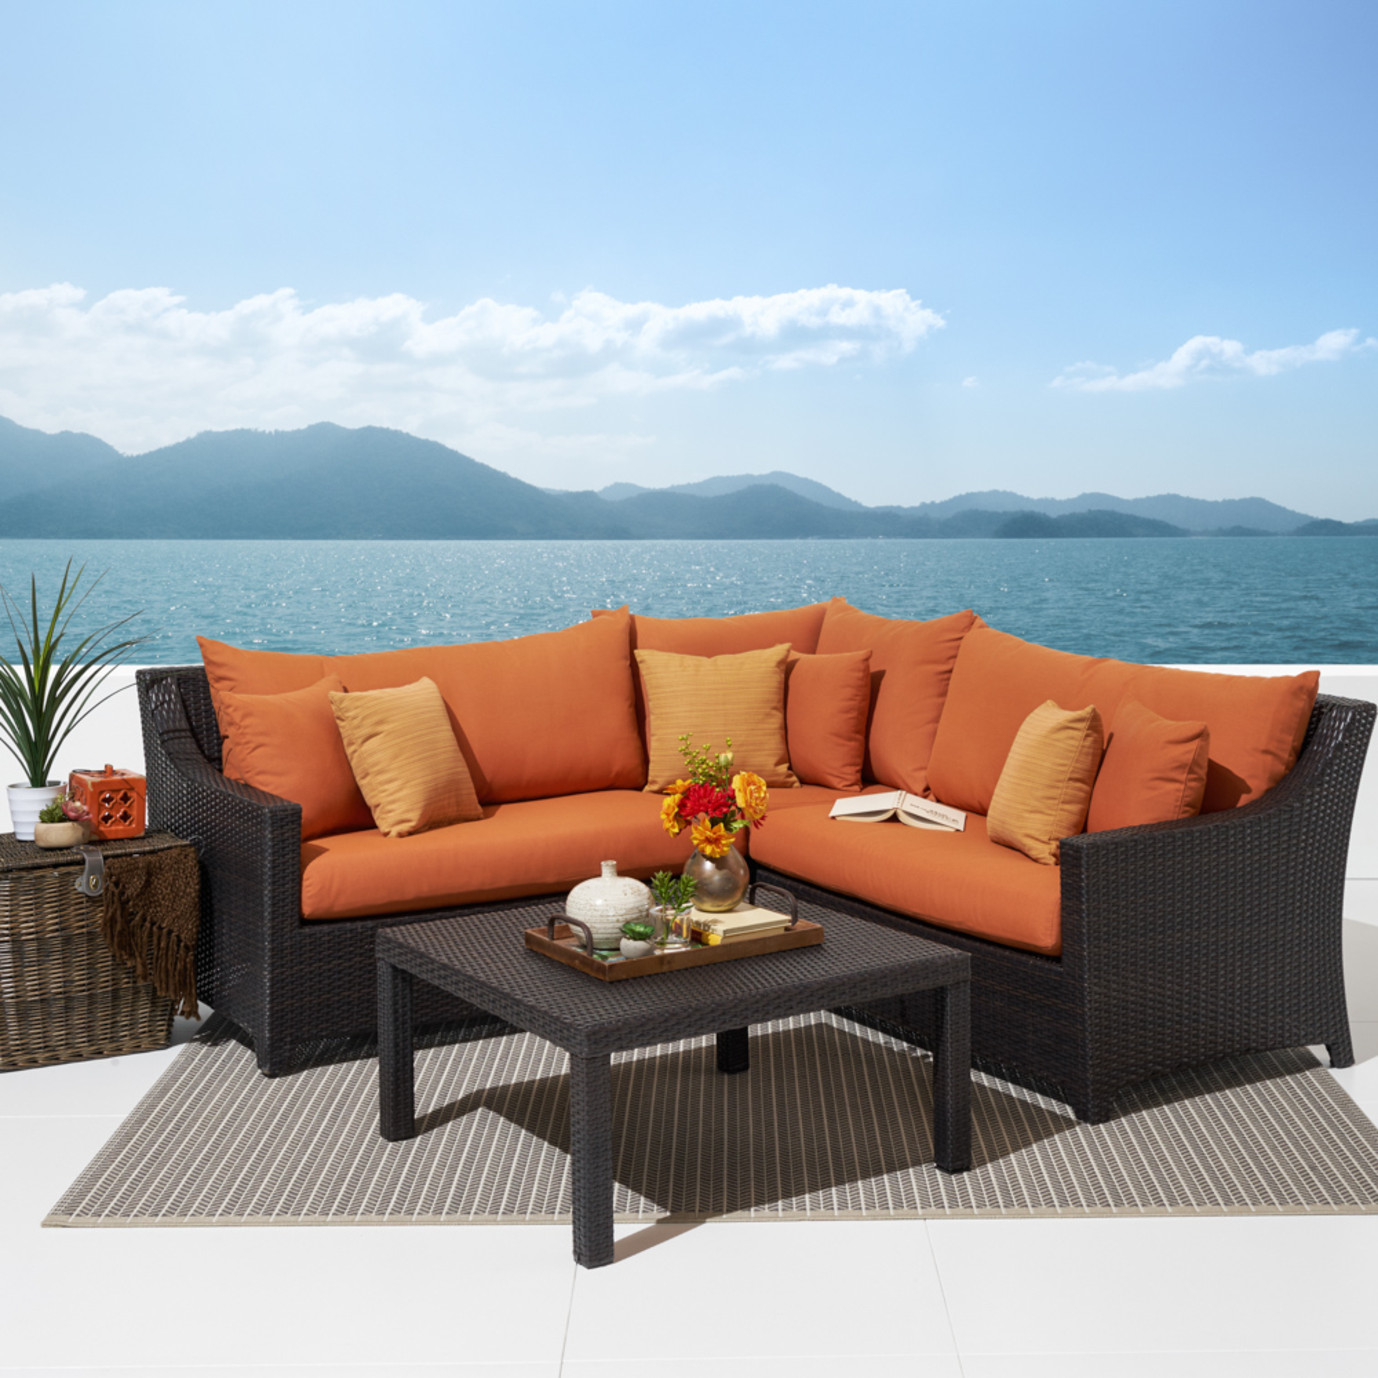 Deco™ 4 Piece Sectional and Table - Tikka Orange